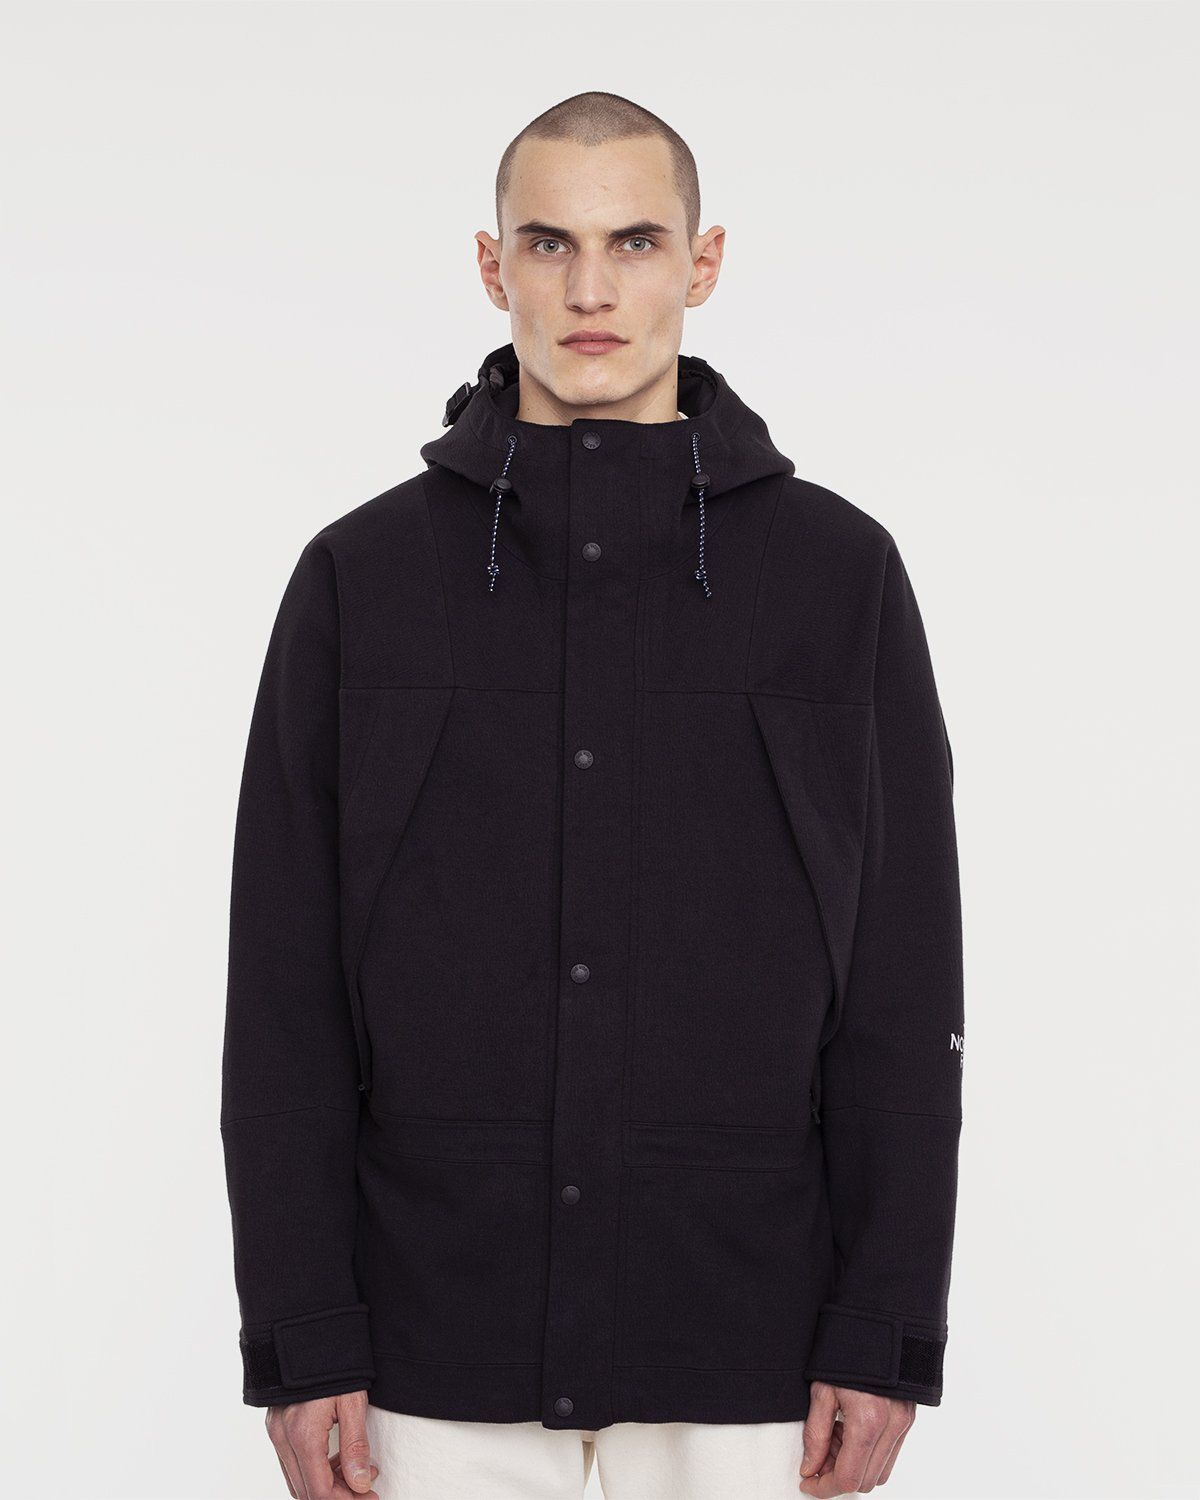 The North Face Black Series - Spacer Knit Mountain Light Jacket Black - Image 2